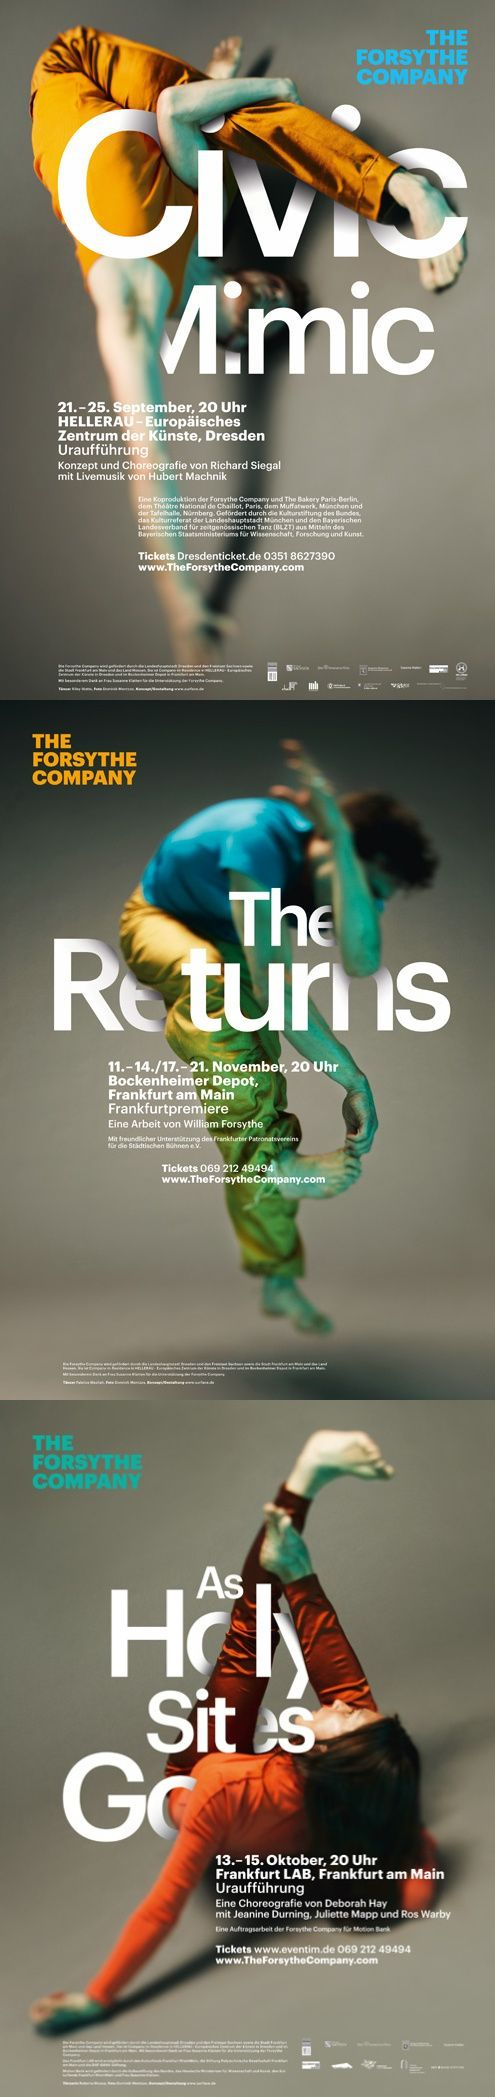 Design: TheForsyTheCompany Purpose: Advertise a dance show in Dresden